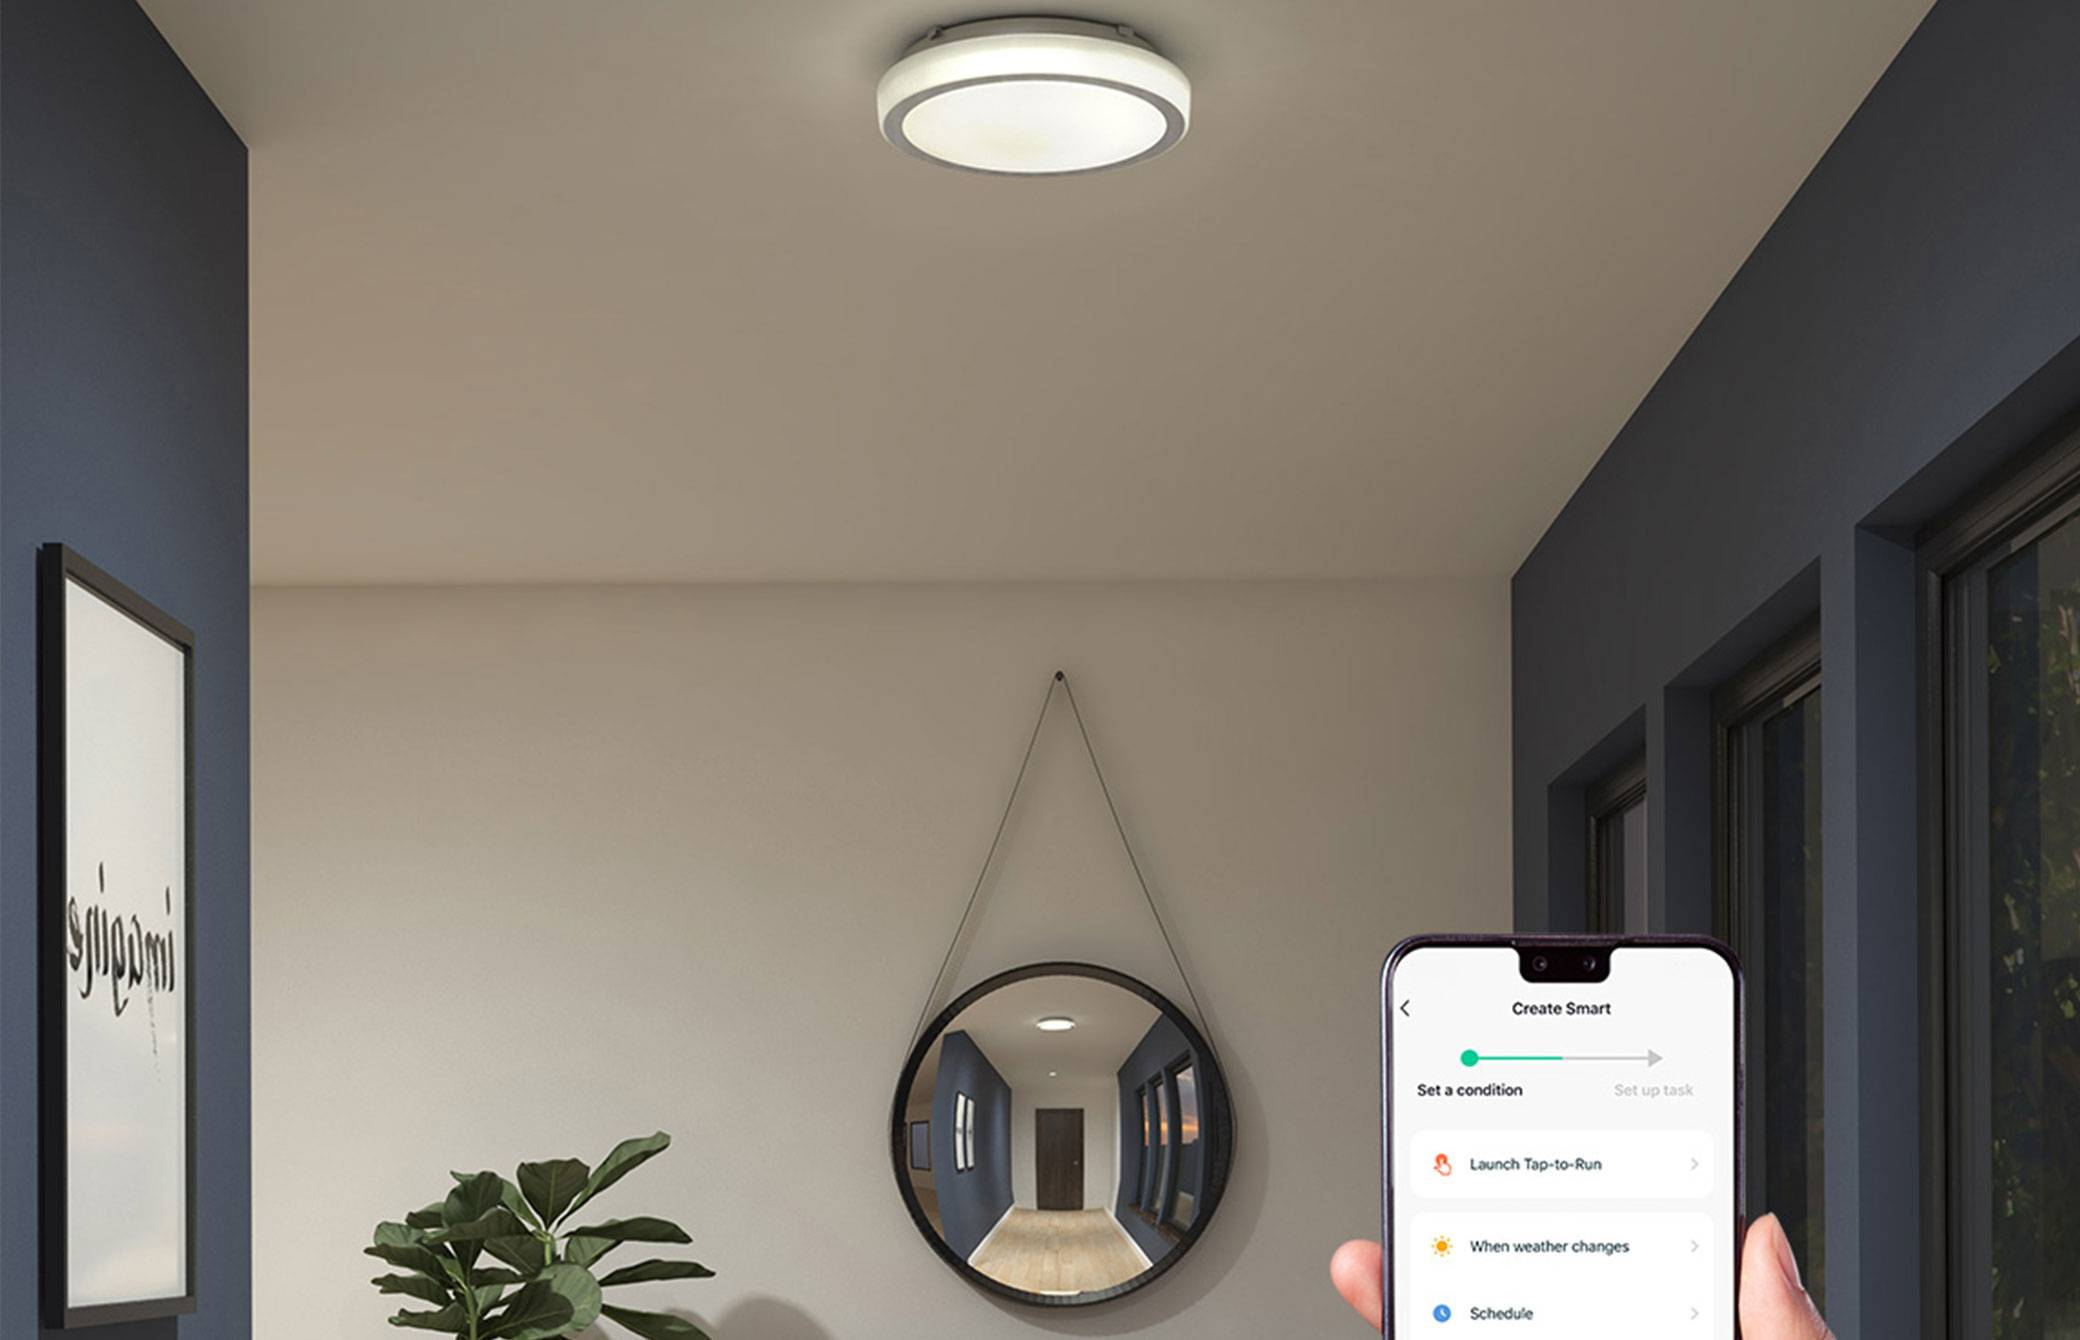 Pluto Artika Ceiling Light, being operated by a smartphone